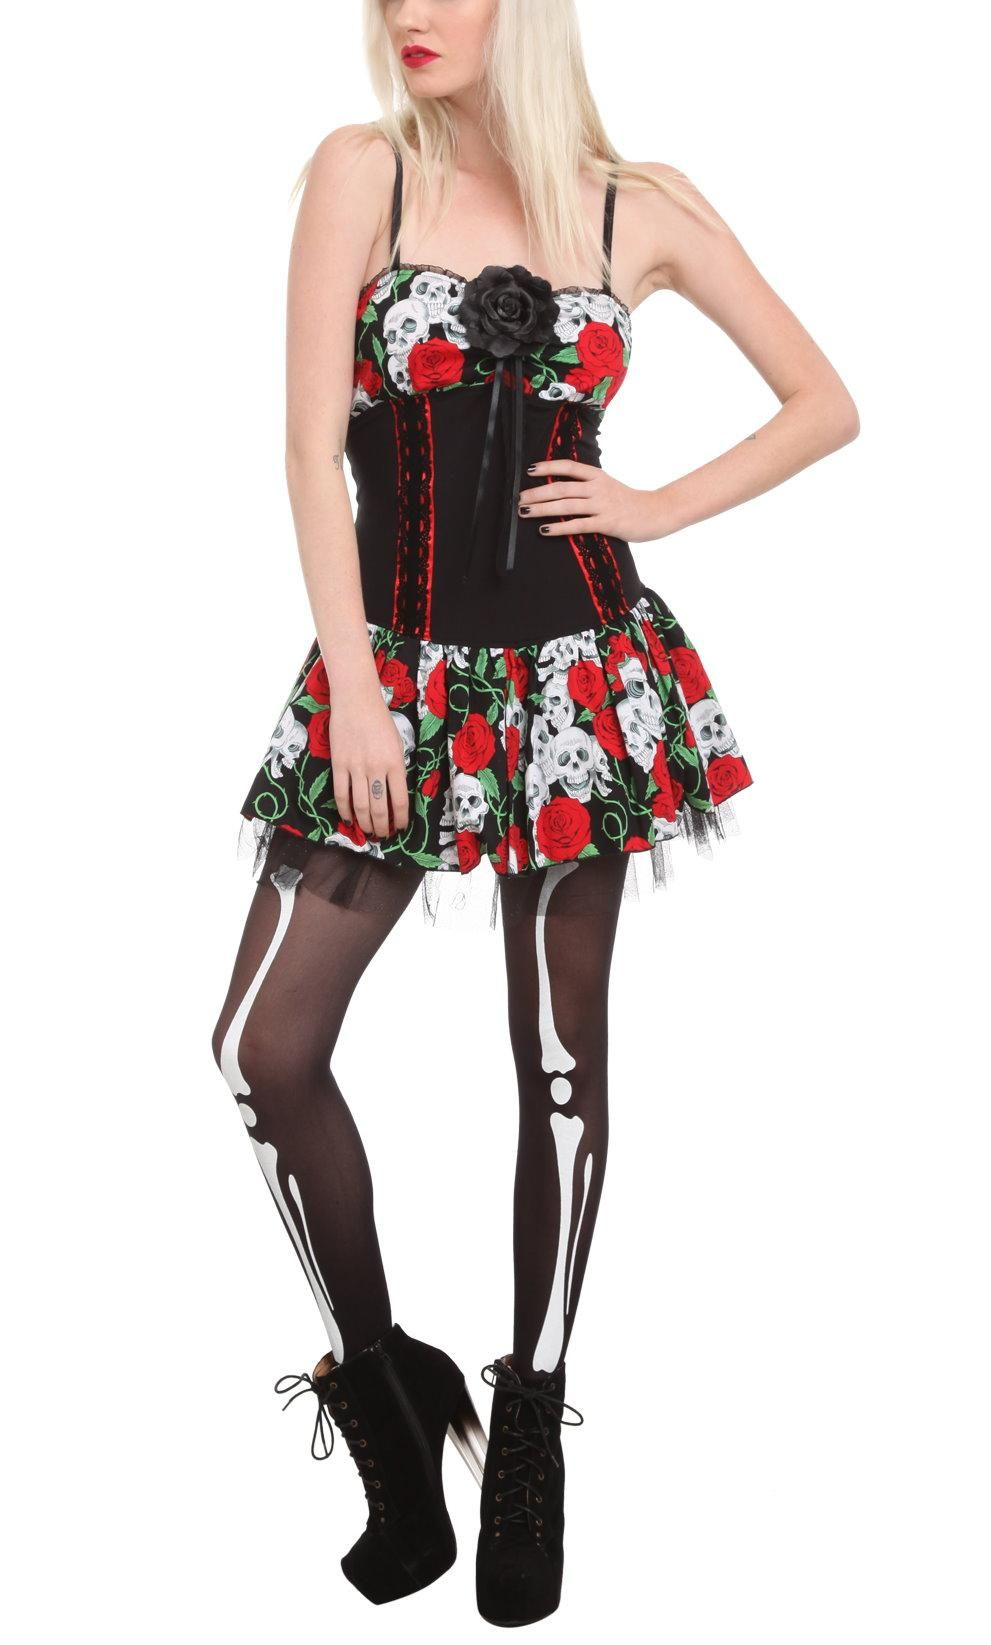 Day of the dead rose skull dress for sale by lutherus teeth at